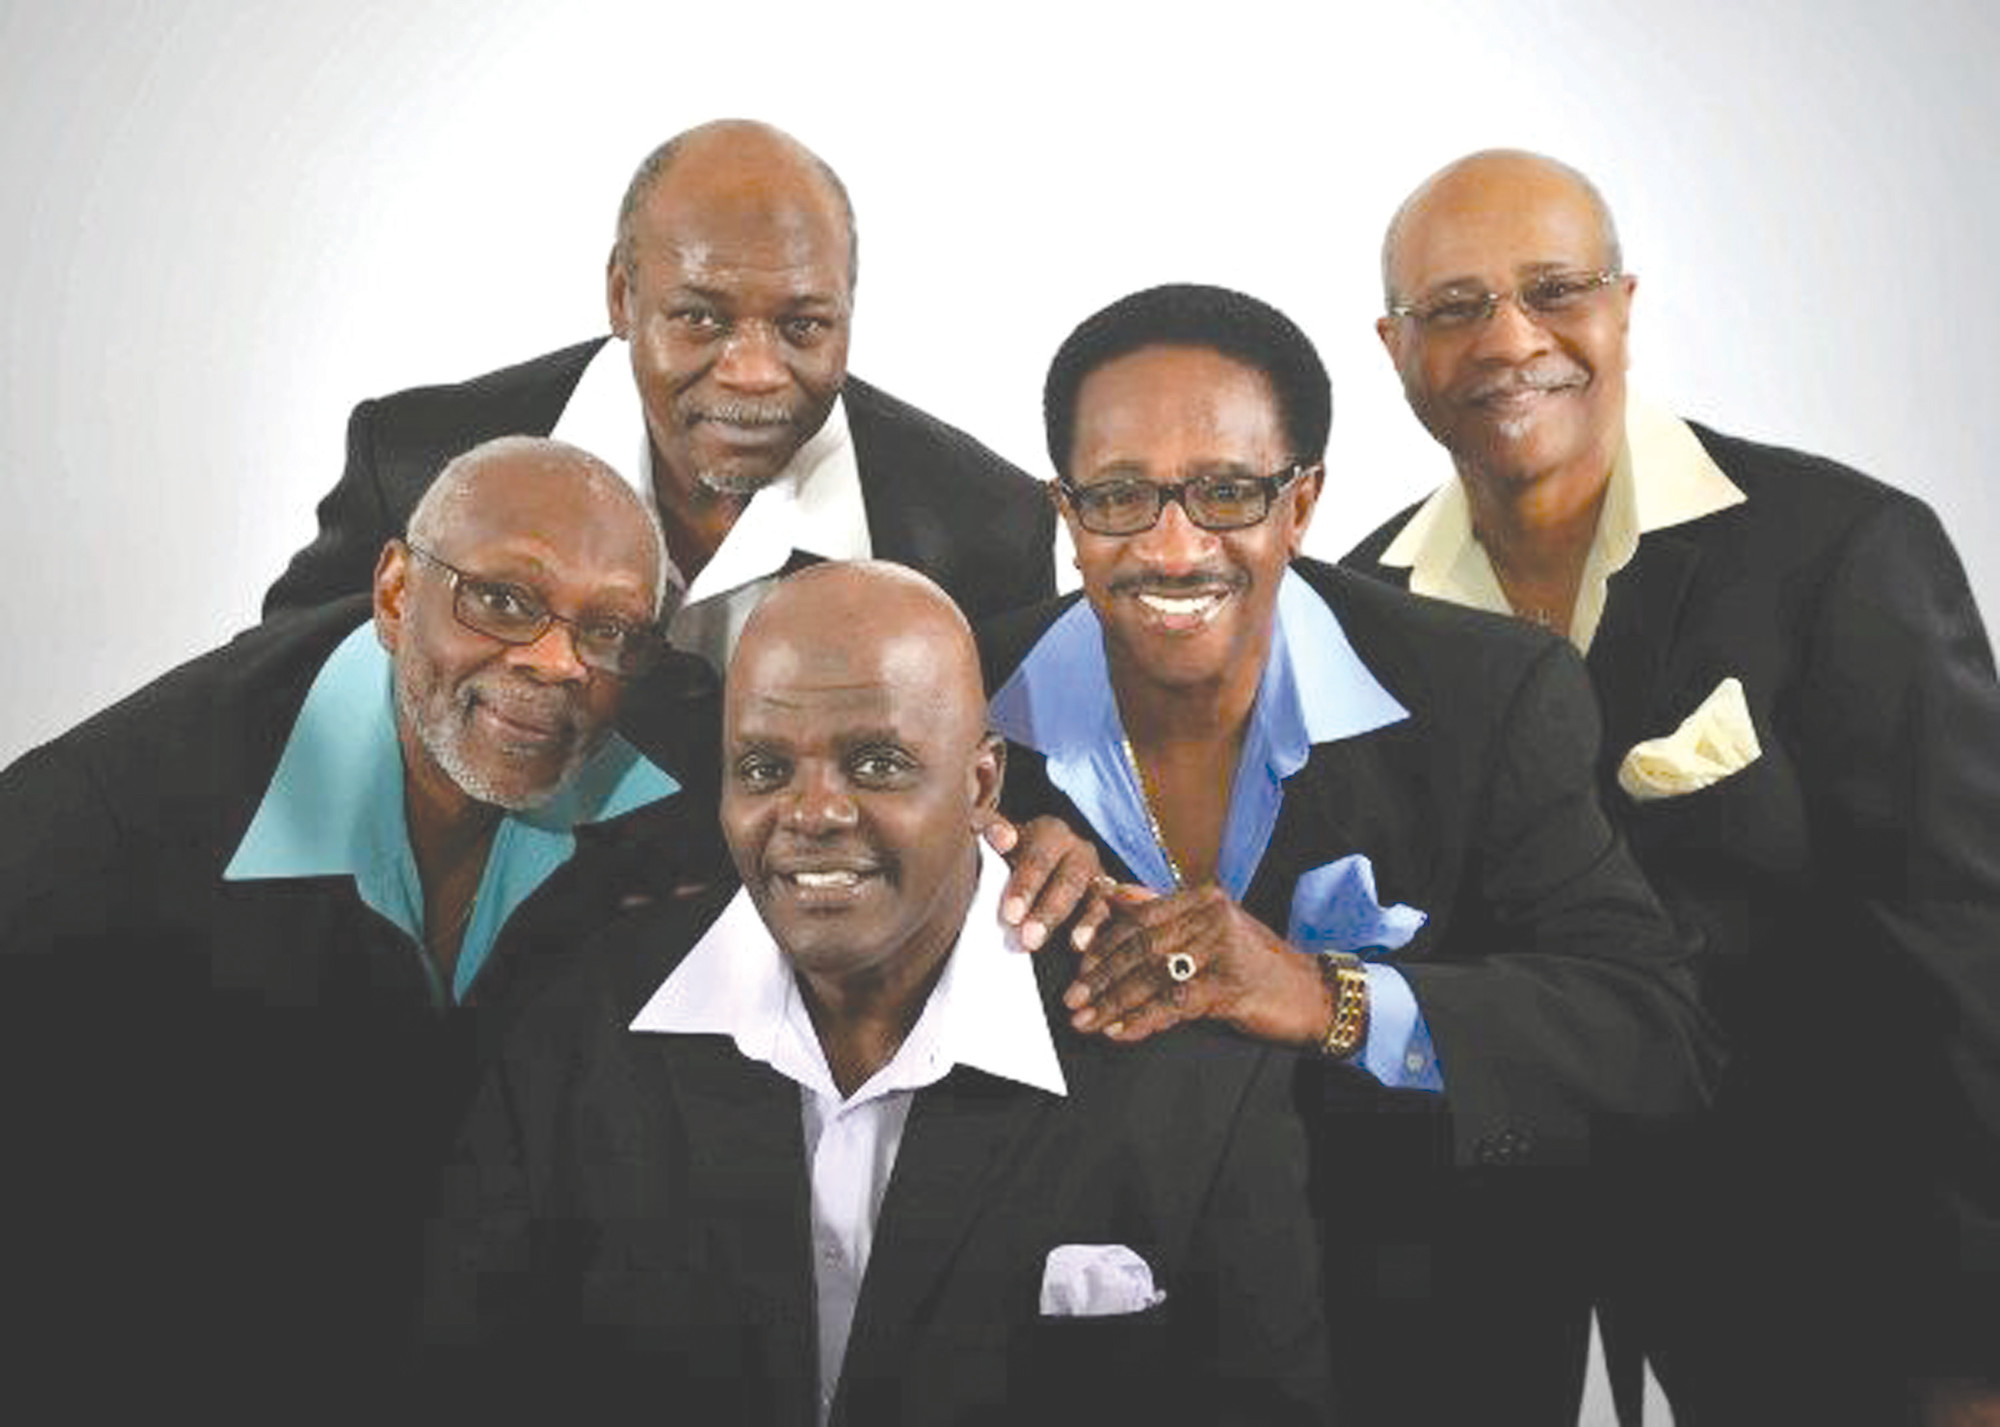 Making a Difference, celebrating The Whispers R&B group, will face off with The Whispers as The Temptations during Saturday's Motown show.